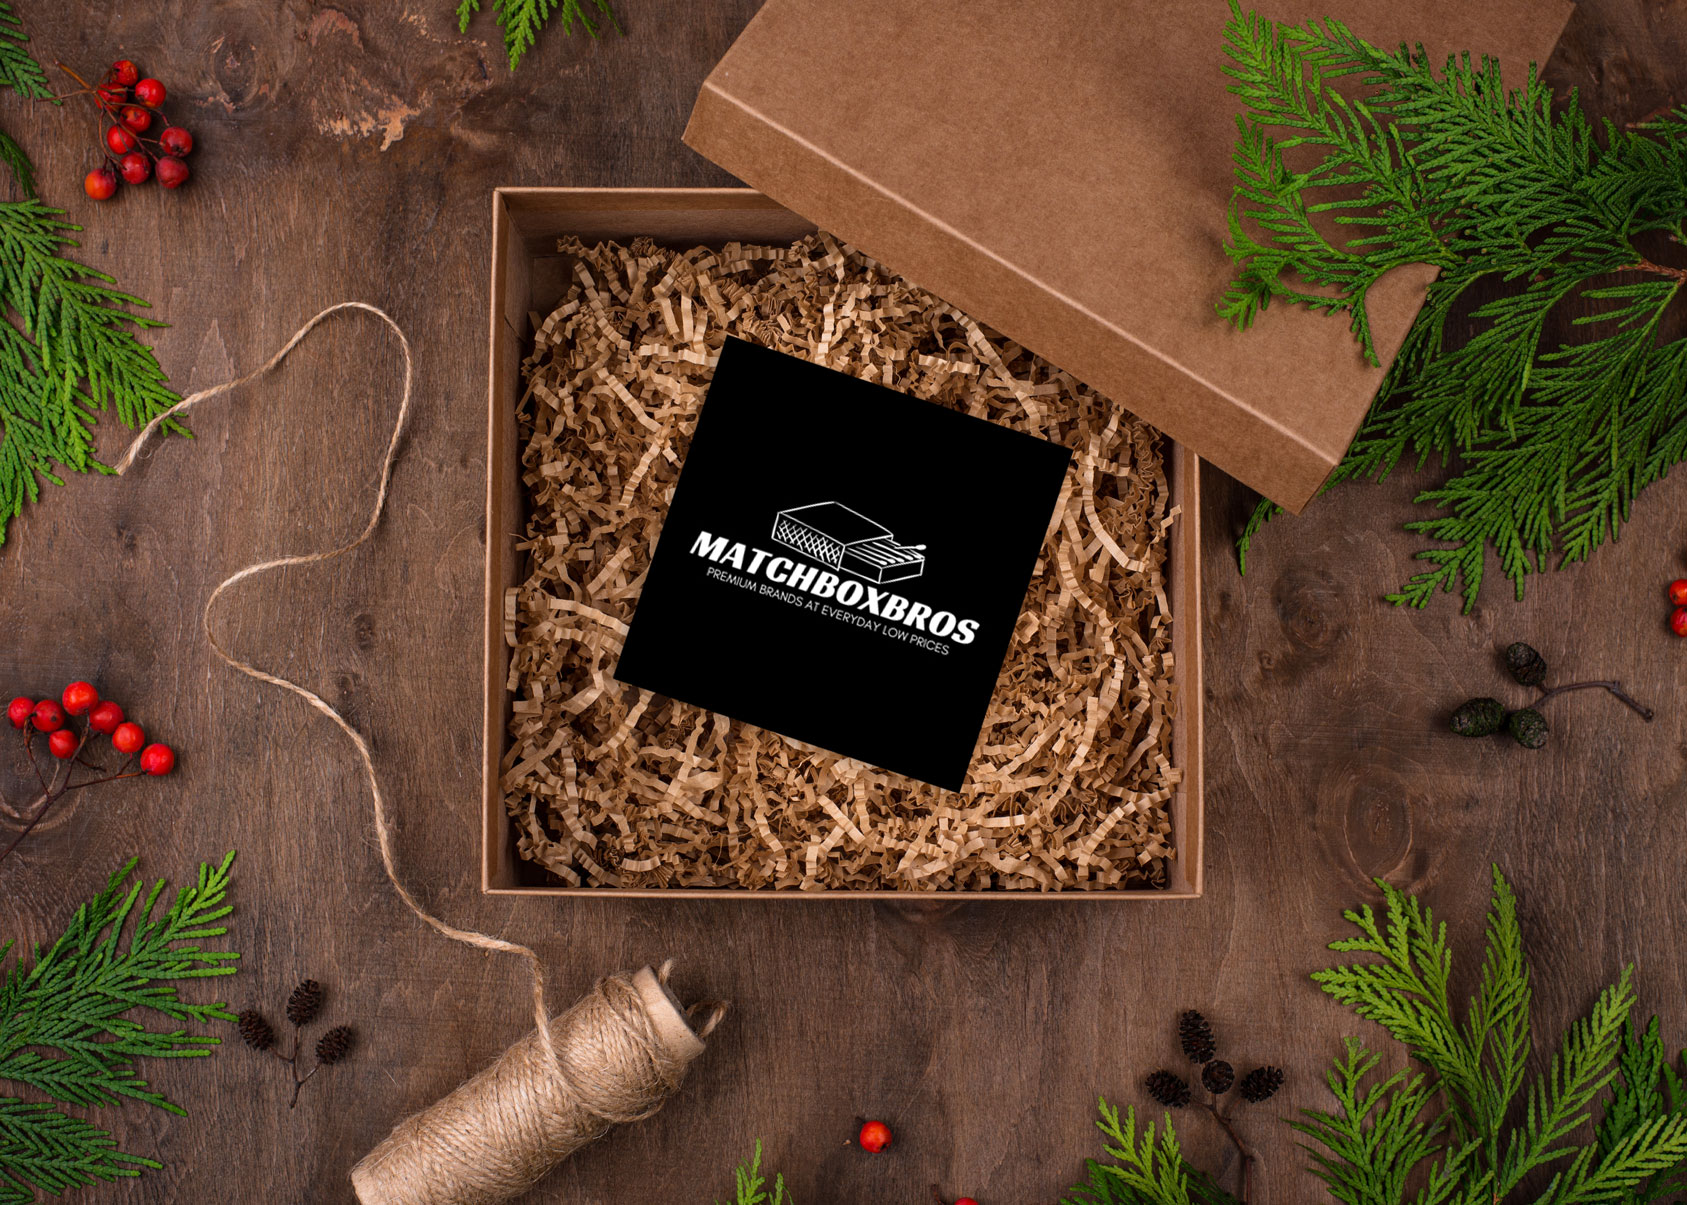 MatchBox Bros Holiday Picks: Best Smoking Accessory Gifts